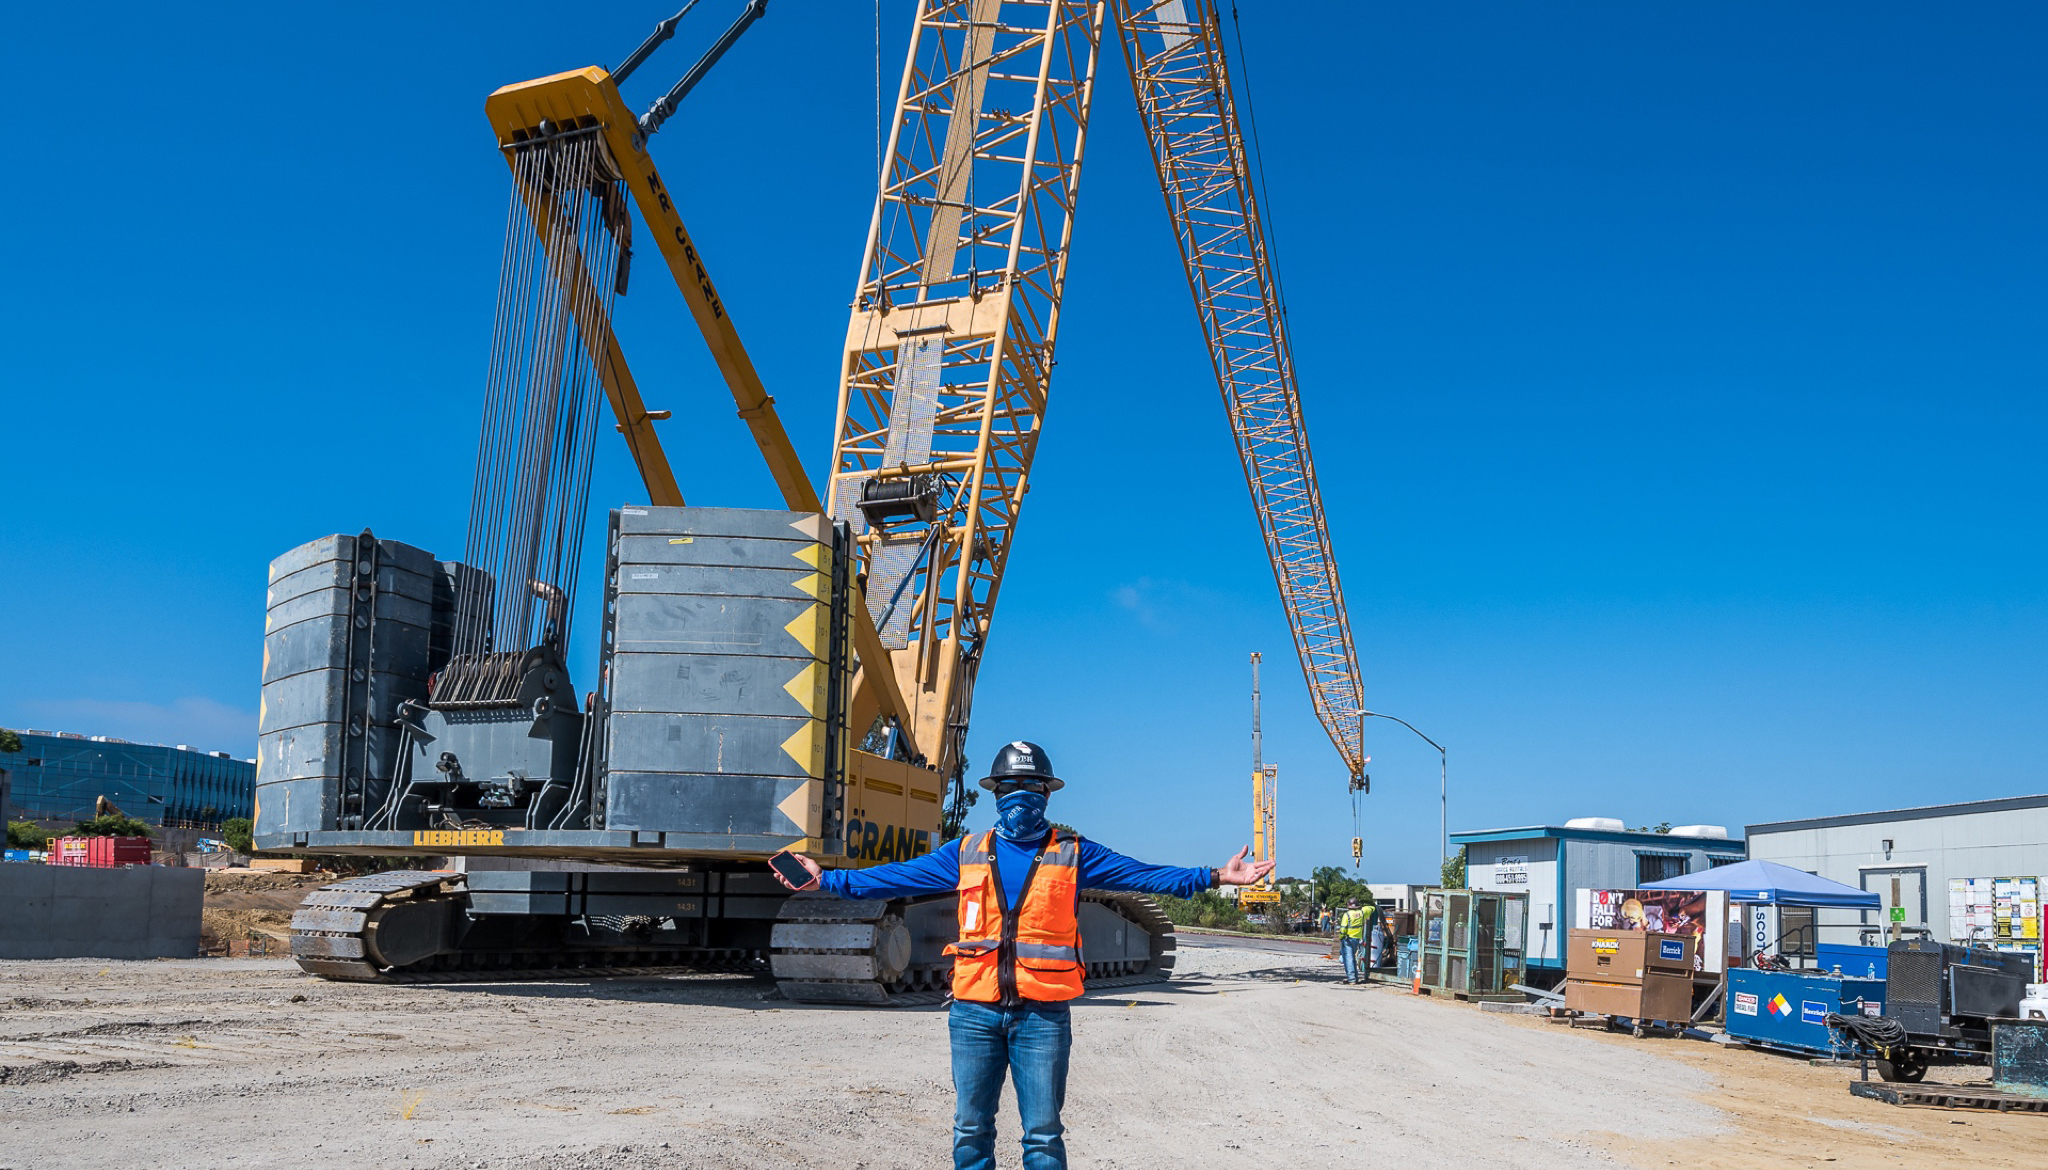 A worker stands in front of a large crane used on a project site in San Diego